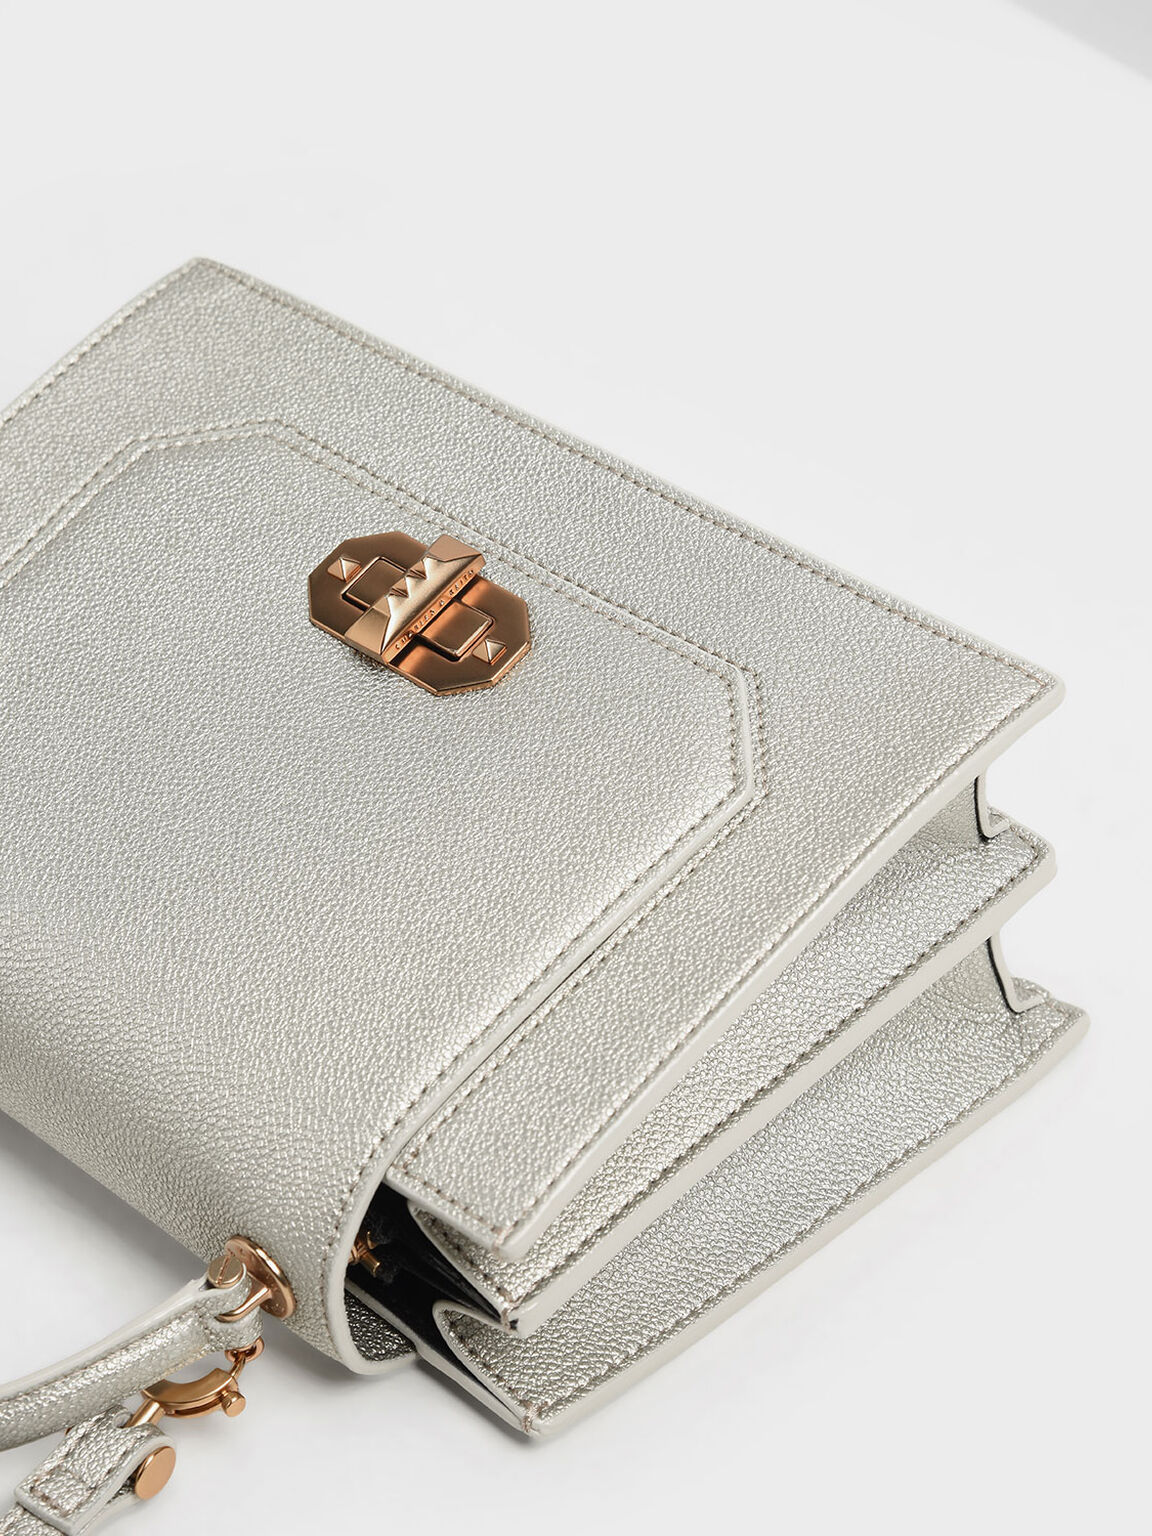 Turn Lock Top Handle Bag, Silver, hi-res